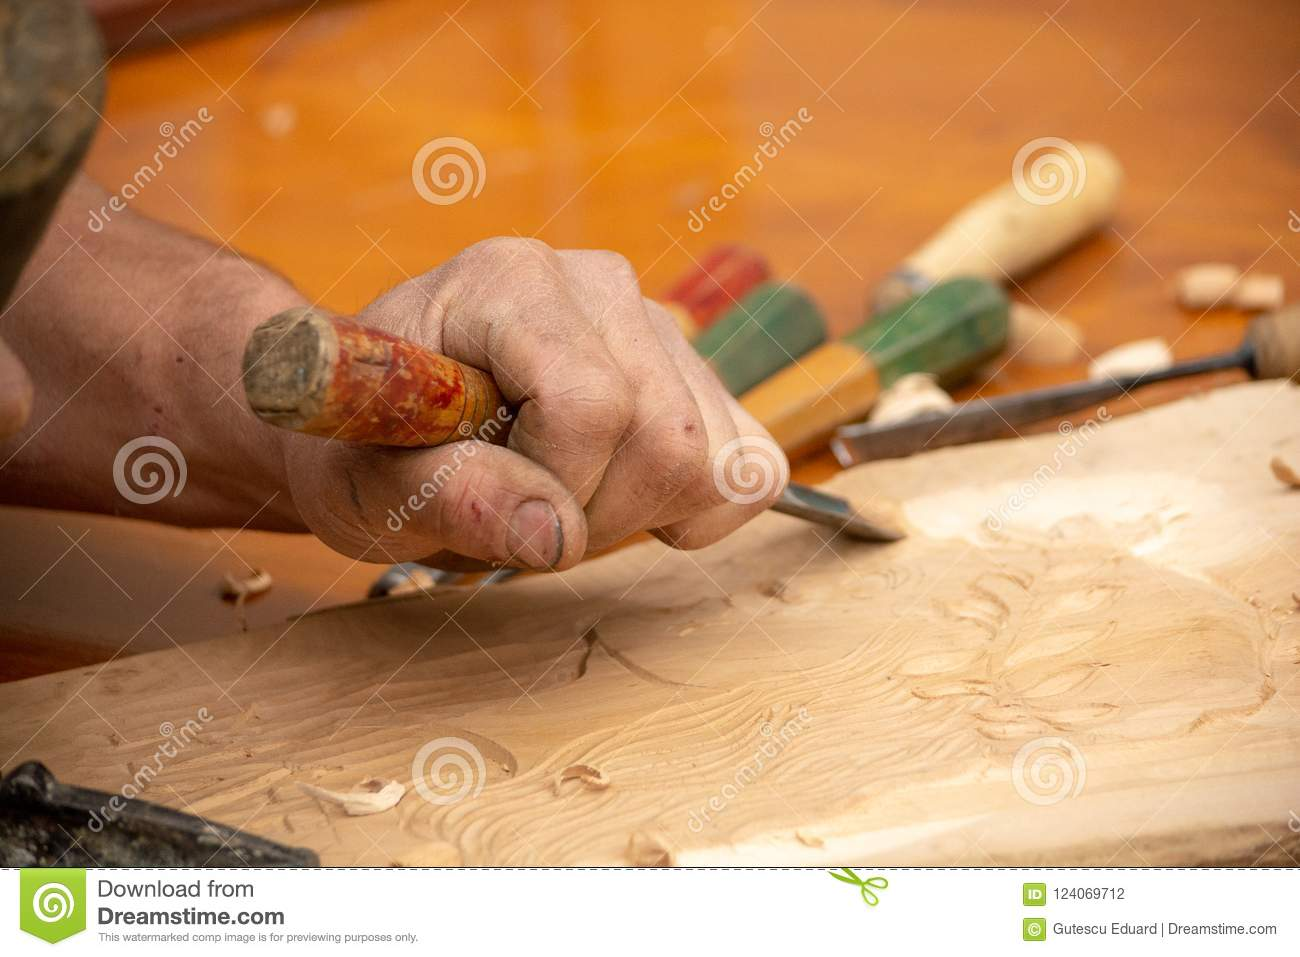 Traditional carpenter close up working hands with carpeting tools.